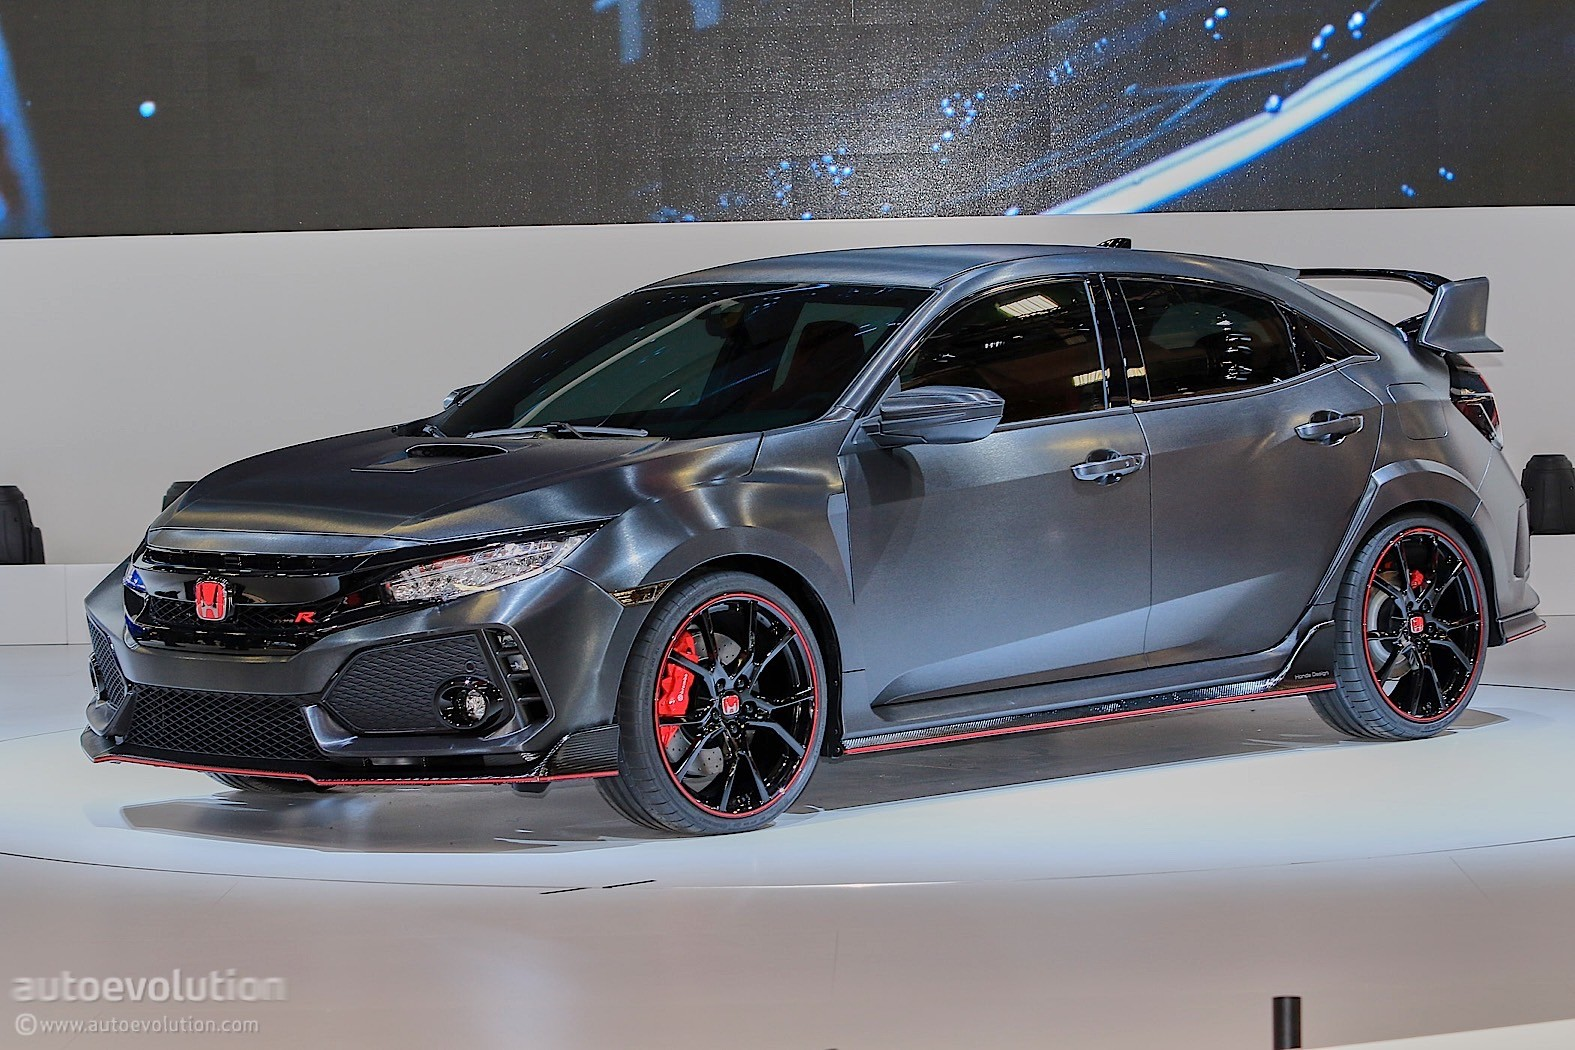 honda confirms new civic type r for 2017 geneva motor show. Black Bedroom Furniture Sets. Home Design Ideas